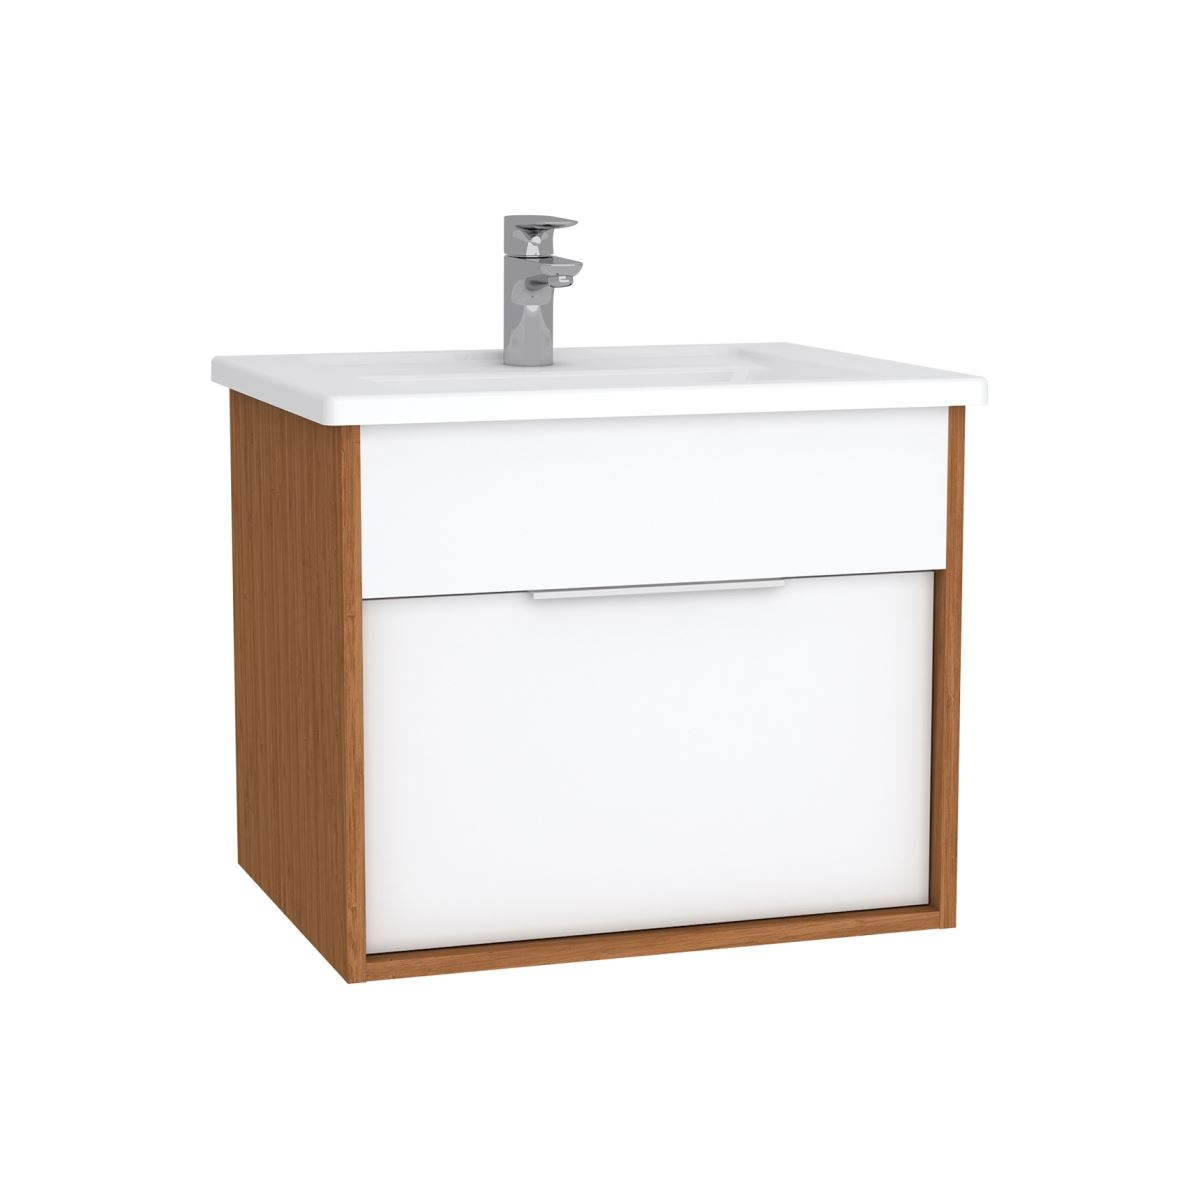 Discounted Vitra Bathroom Supplies Collection Online